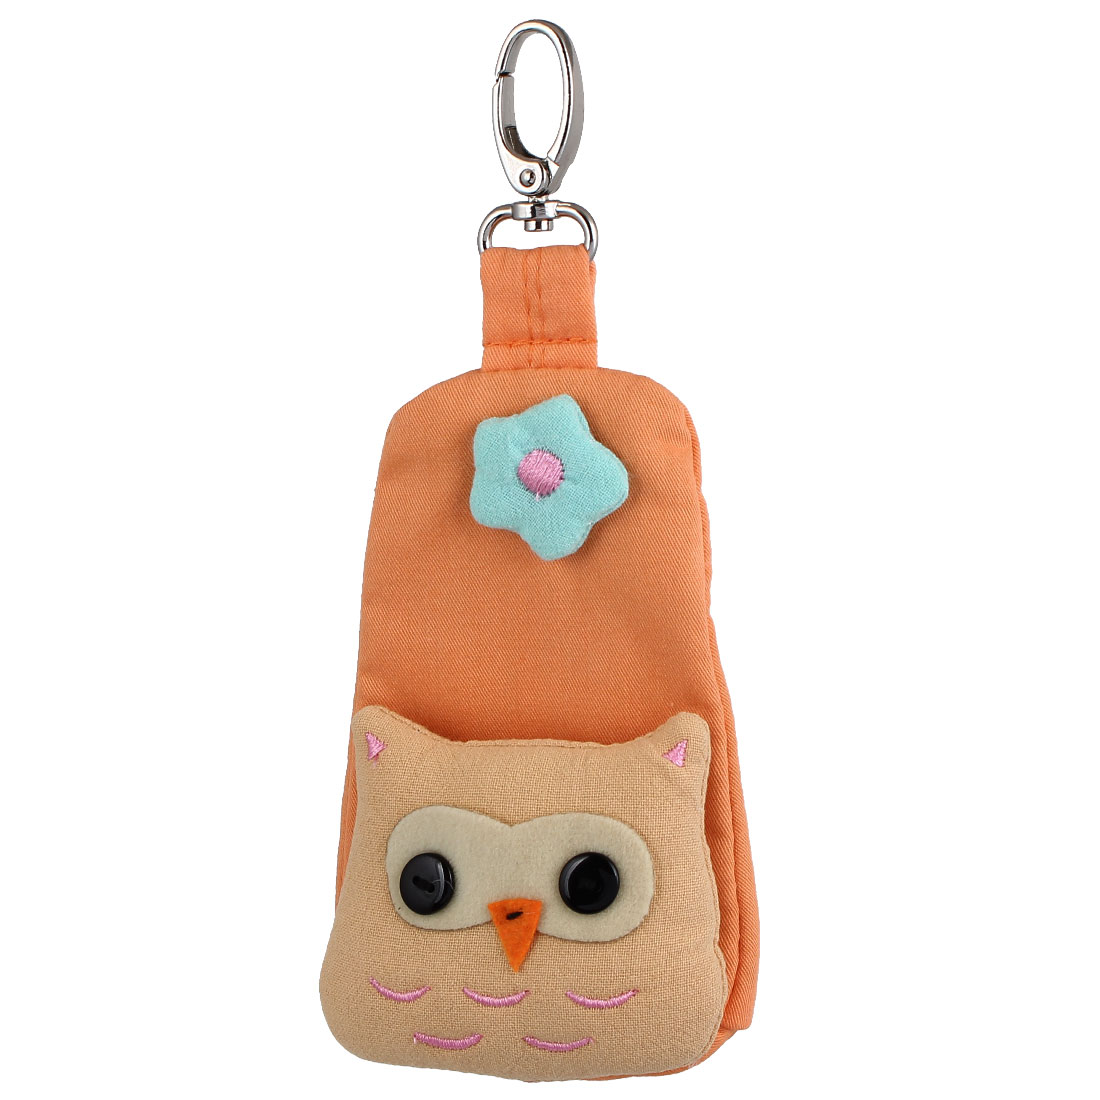 Lobster Clasp Zip Up Cloth Owl Head Decor Key Coin Bag Purse Wallet Pouch Orange